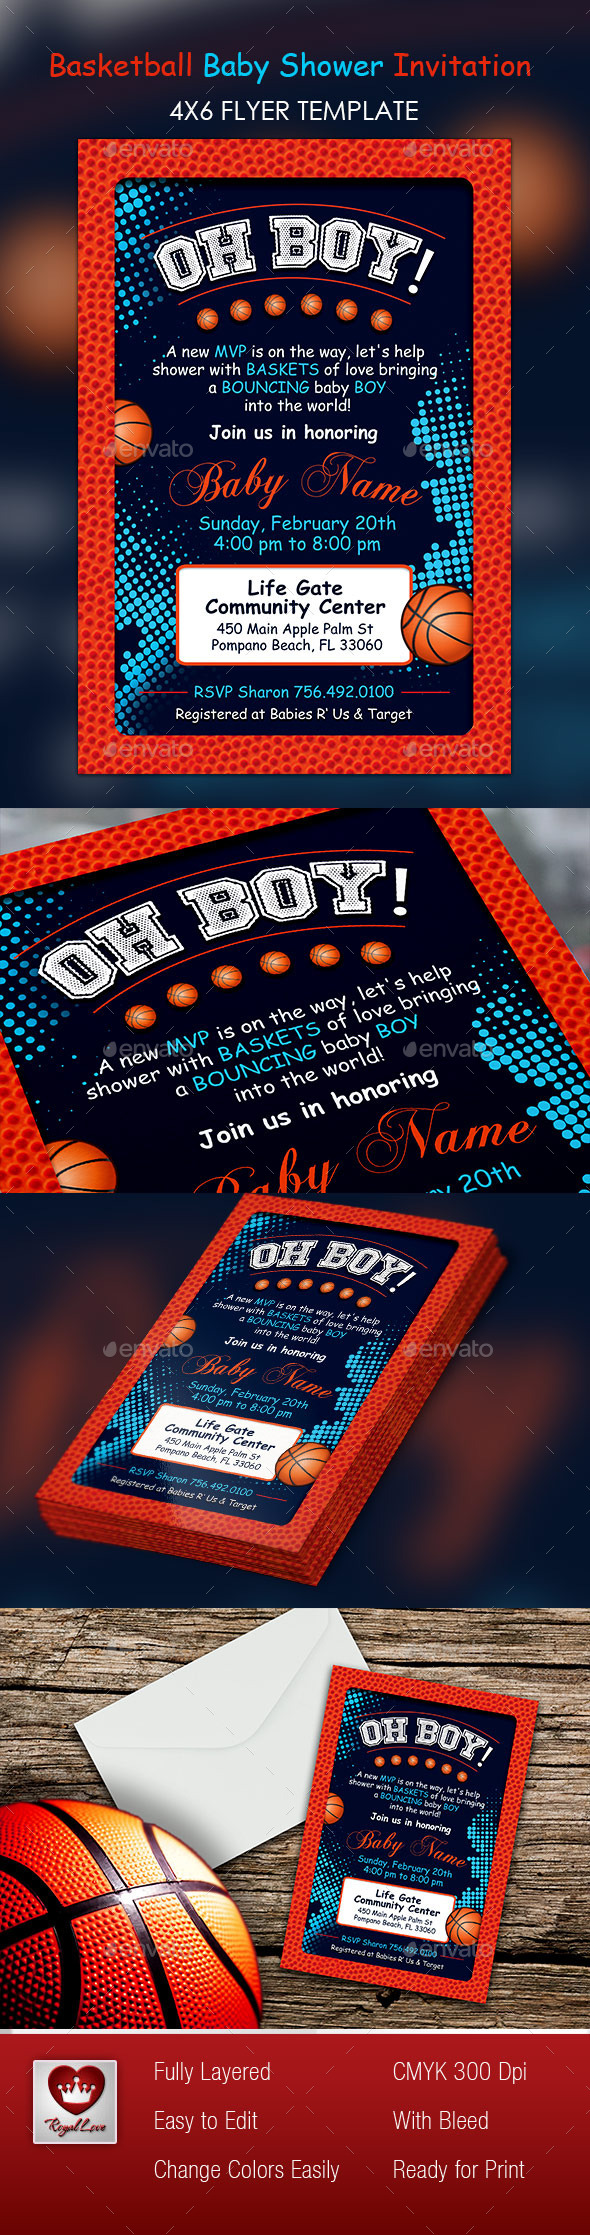 Basketball Baby Shower 4x6 Invitation - Invitations Cards & Invites